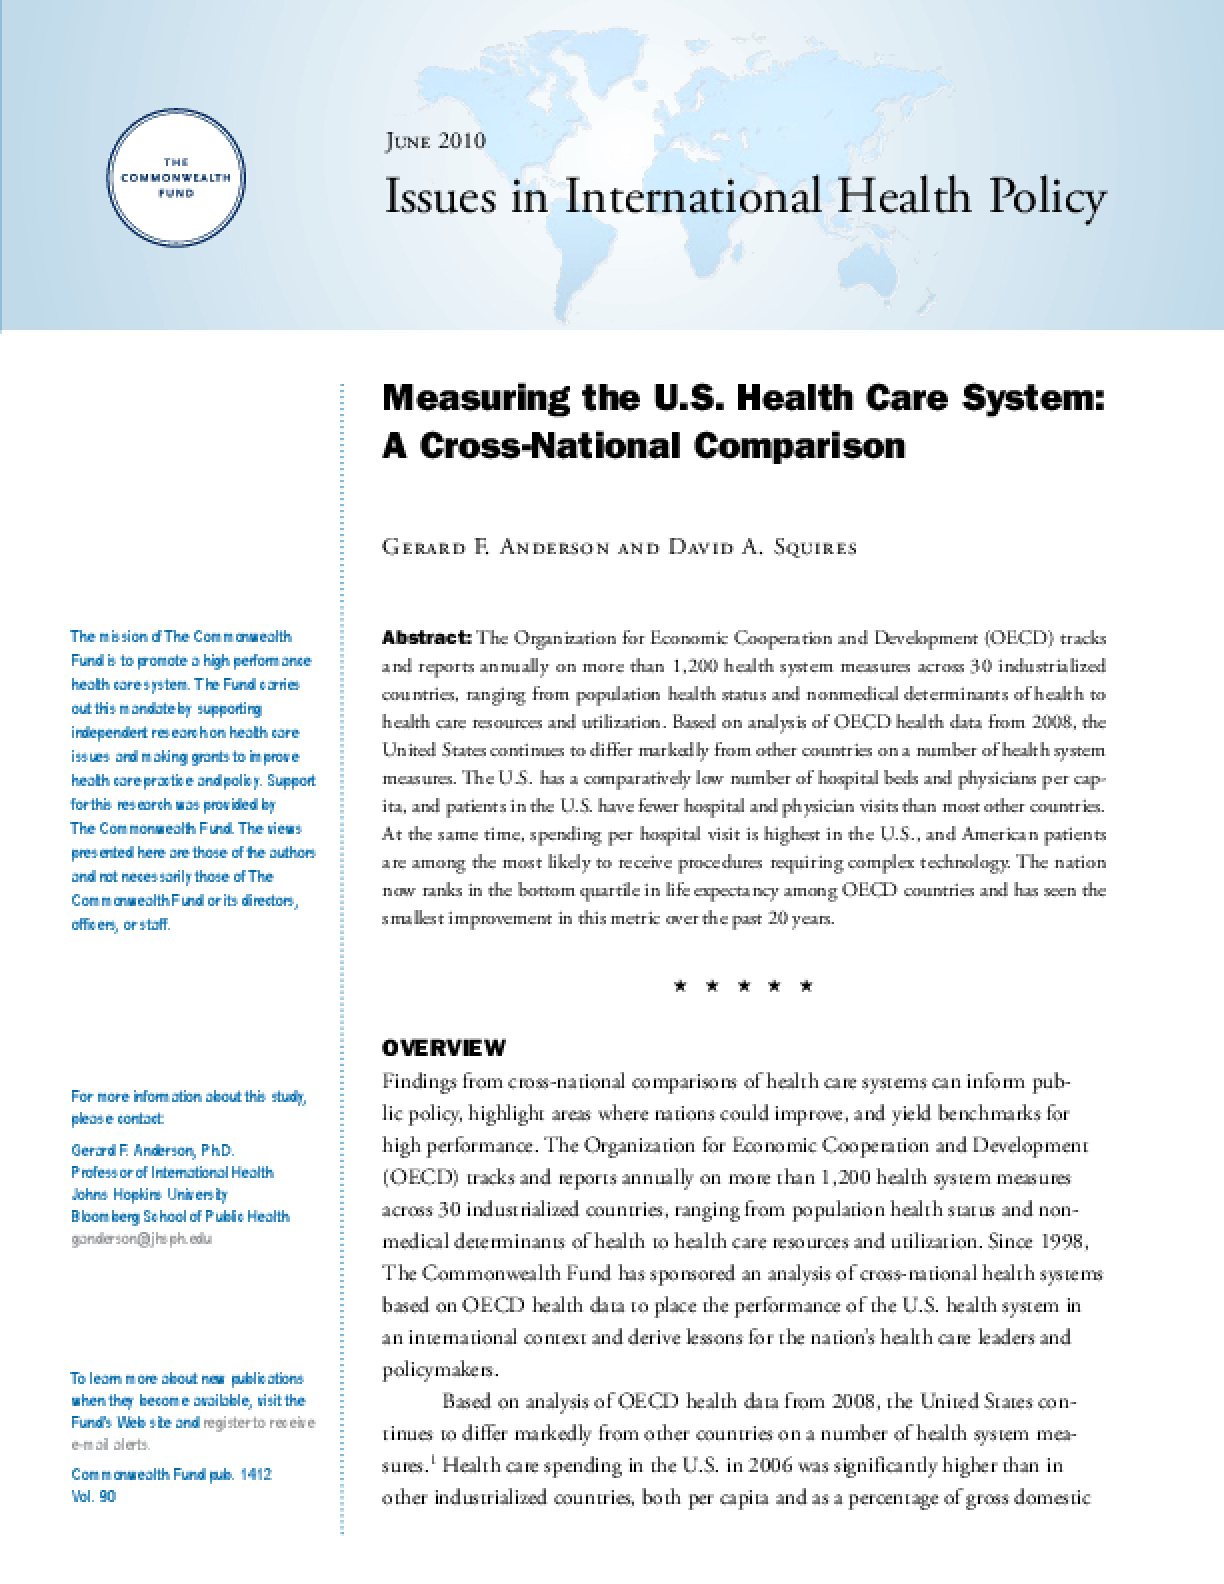 benchmark laws in u.s. health care essay In catastrophic care: how american health care killed my father—and how we can fix it, goldhill argues that the incentives within the industry are we've built a healthcare system that incentivizes excess care, care whose benefit is poorly measured so, while it's easy to look for villains, it's hard to.